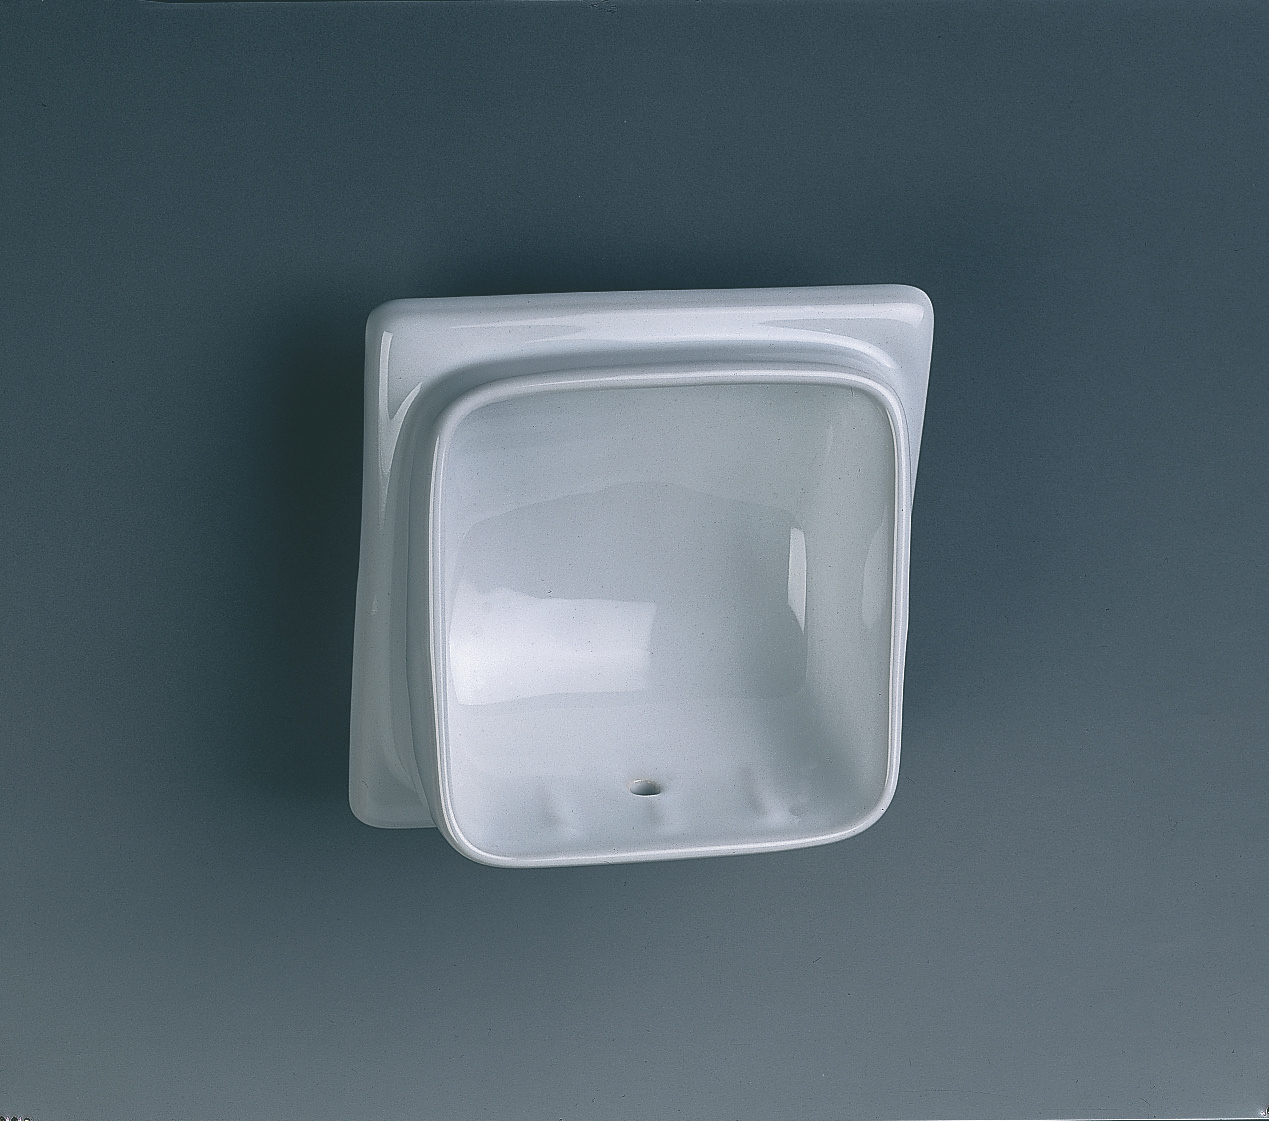 Twyford Built In Semi Recessed Soap Dish   VC9808WH ...